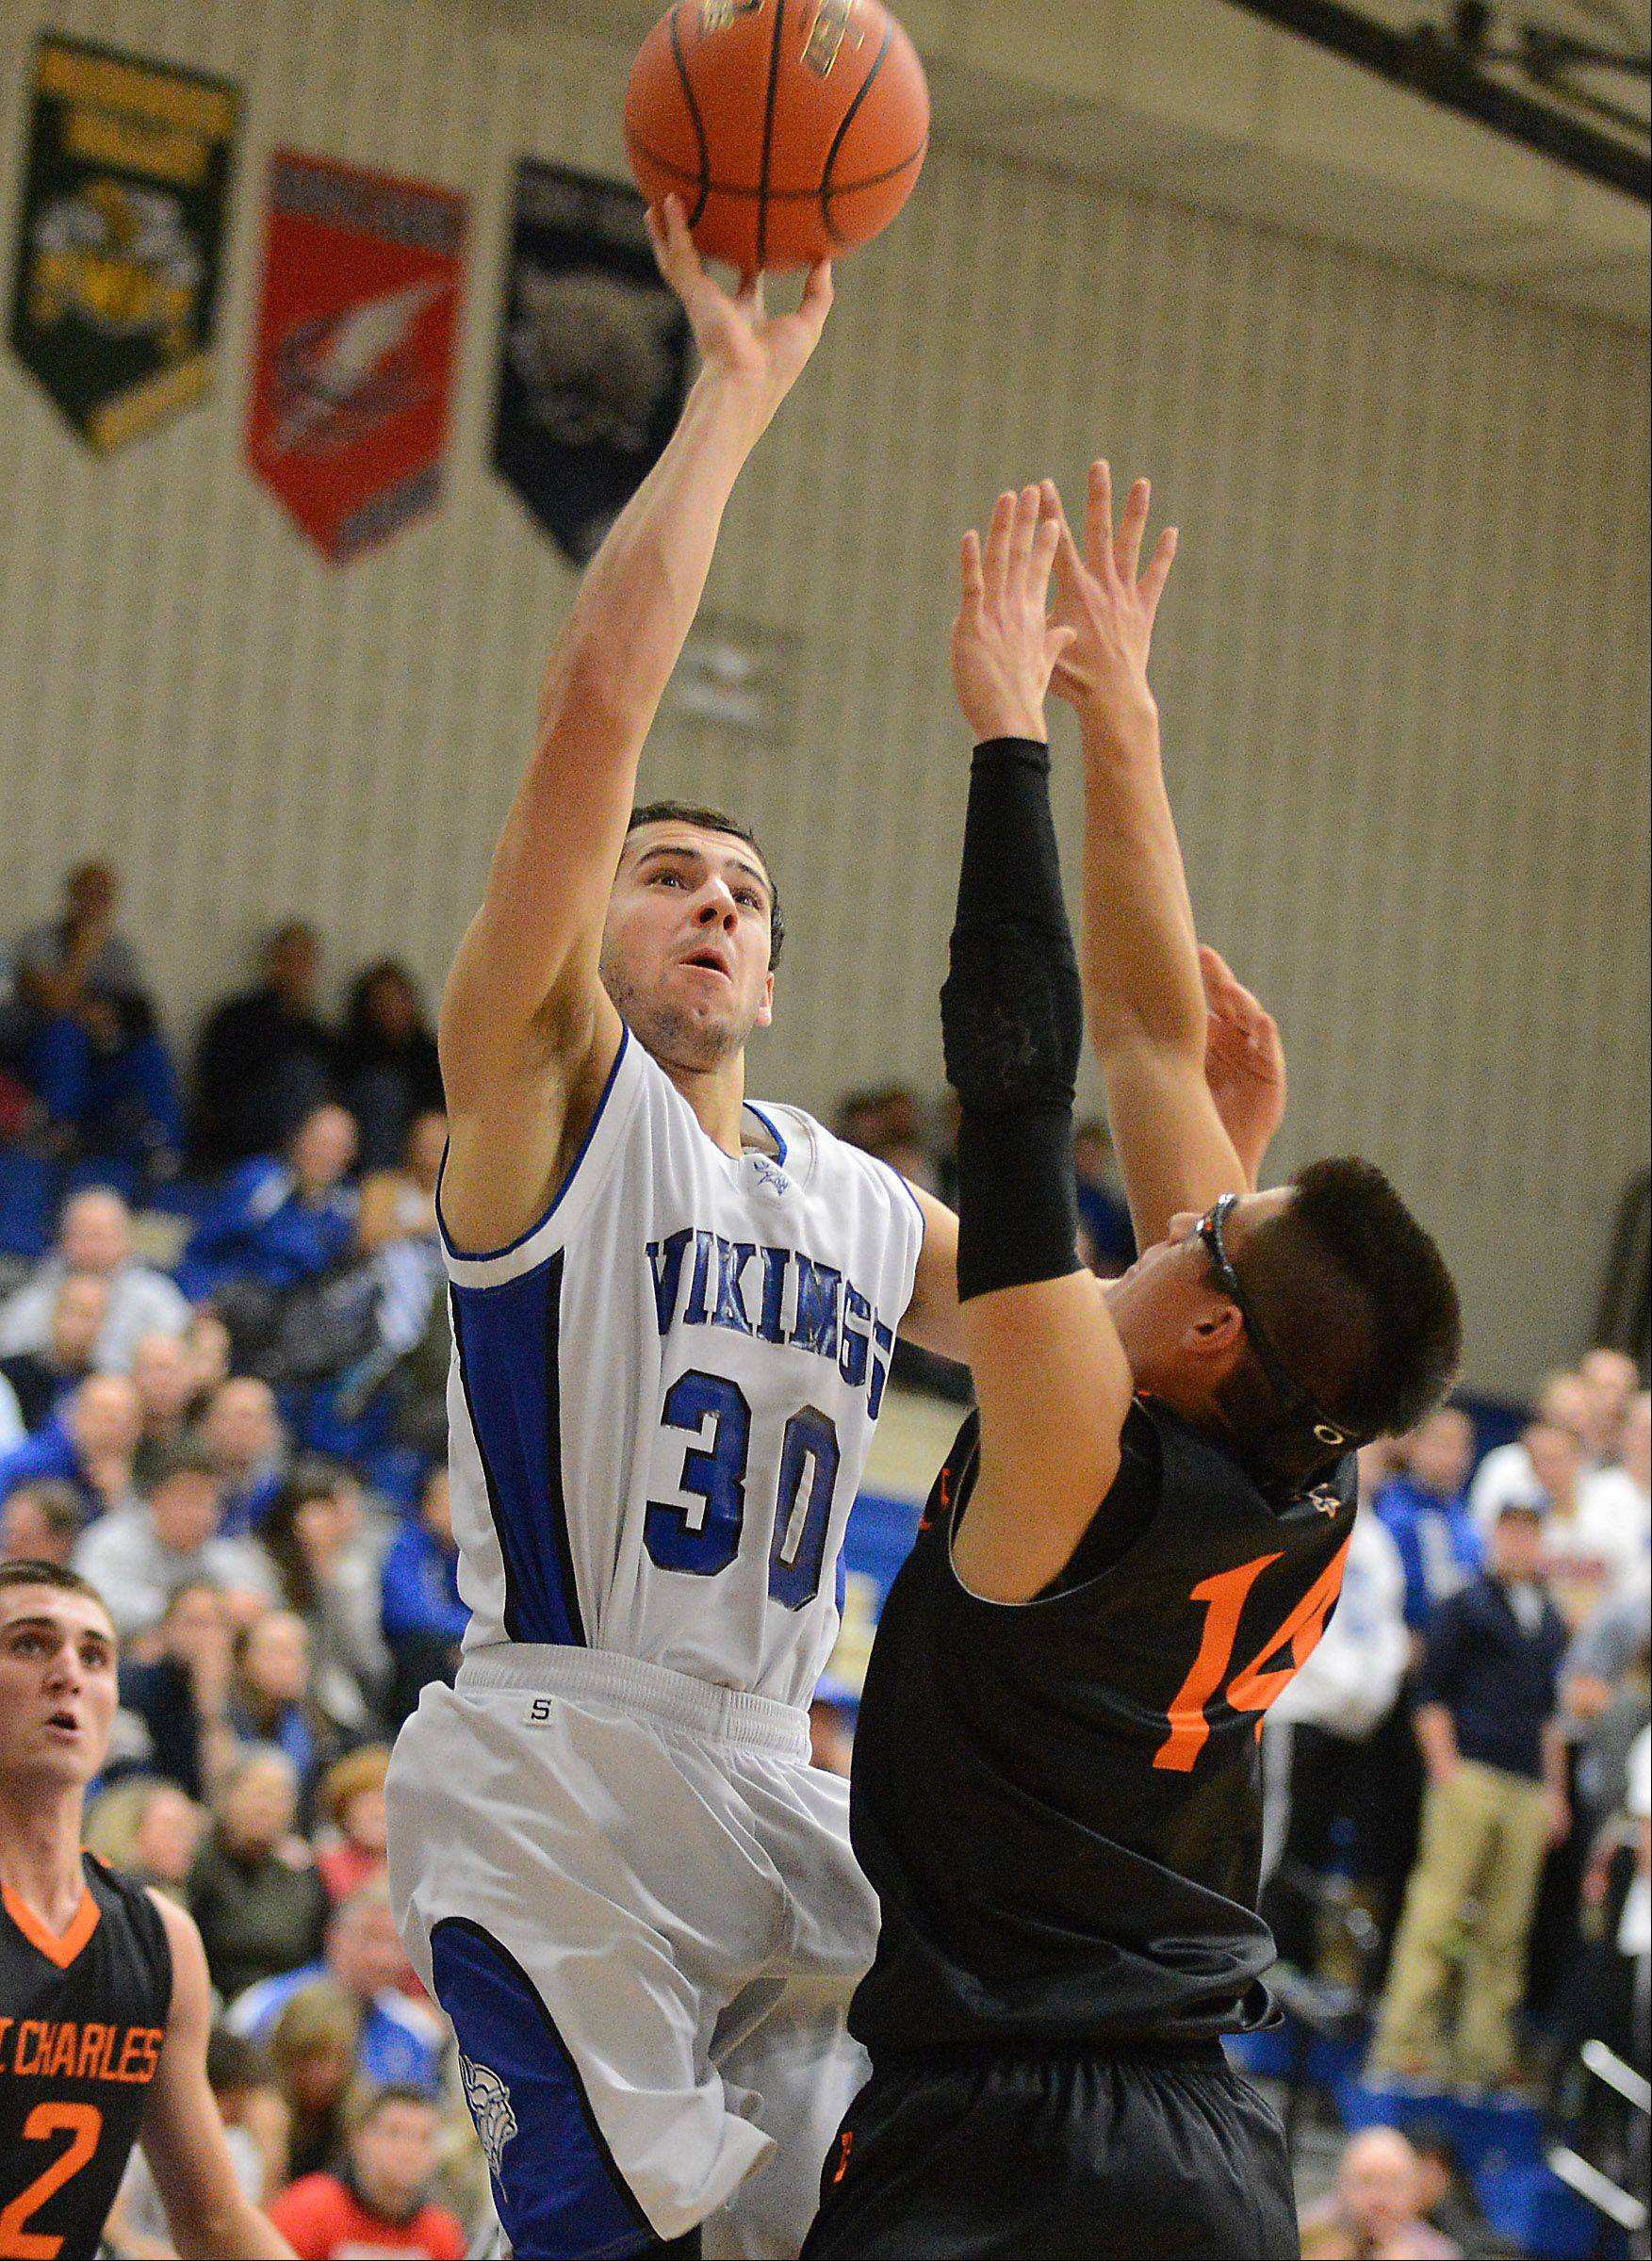 Geneva's Chris Parrilli (30) puts up a one-hander during Friday's game in Geneva.